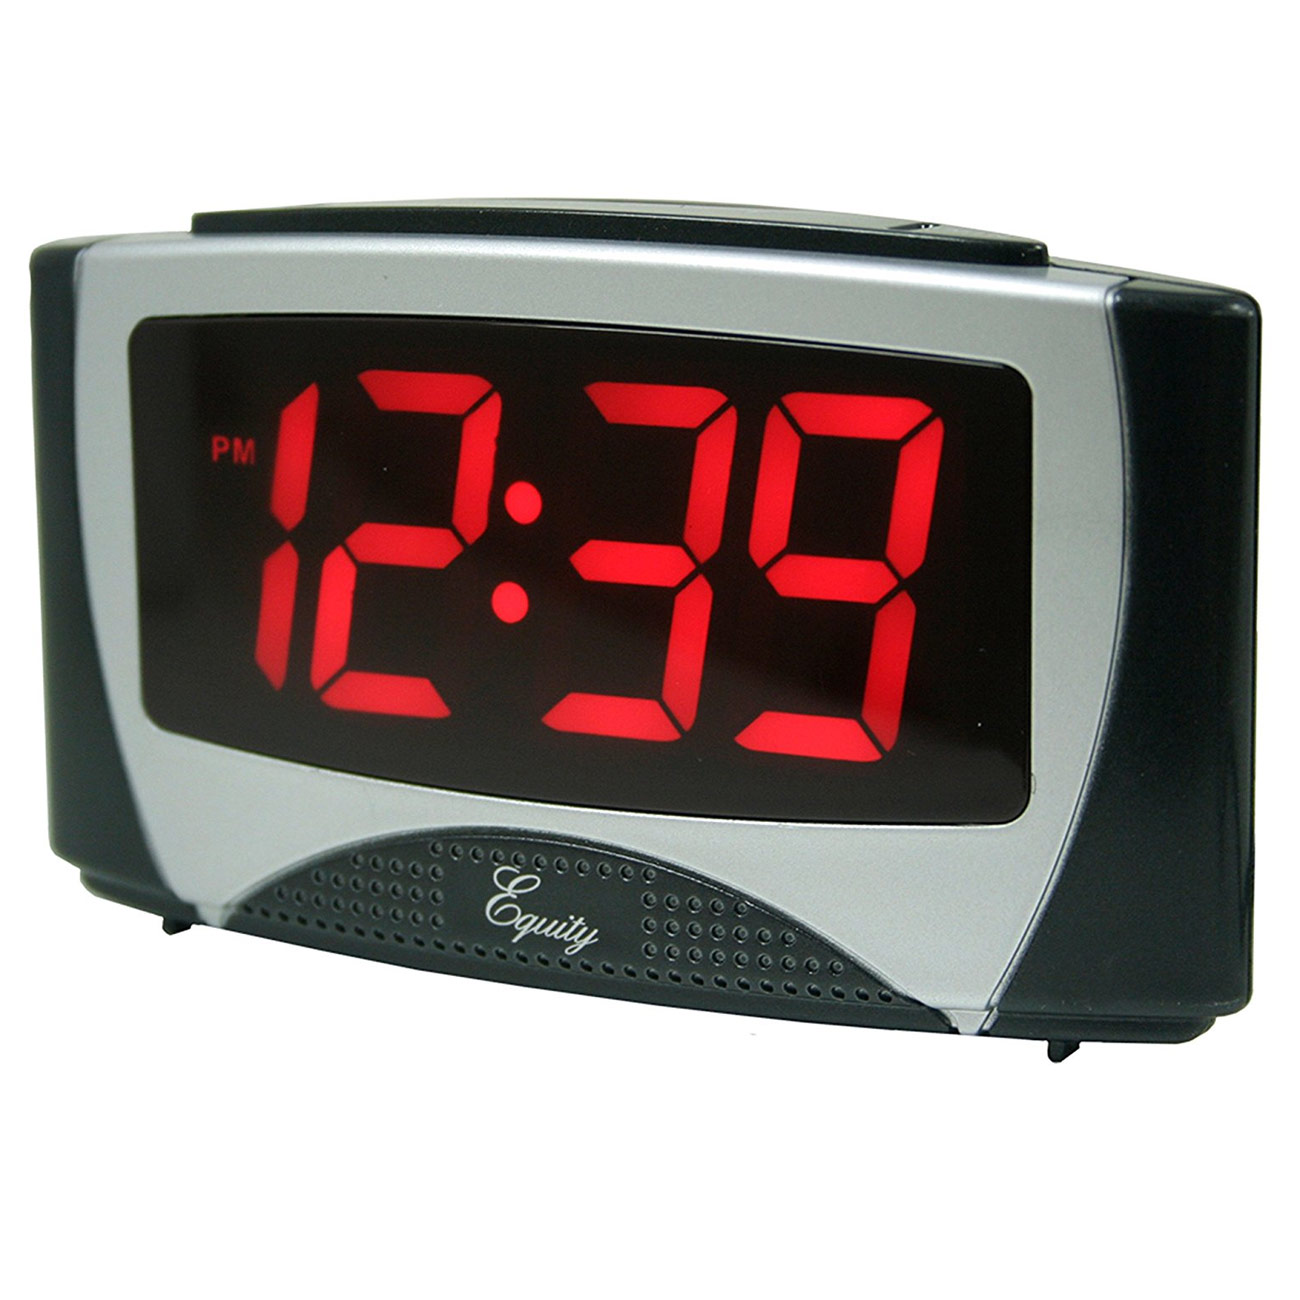 Low Vision Digital Alarm Clock with Jumbo 1.2-inch LED Display